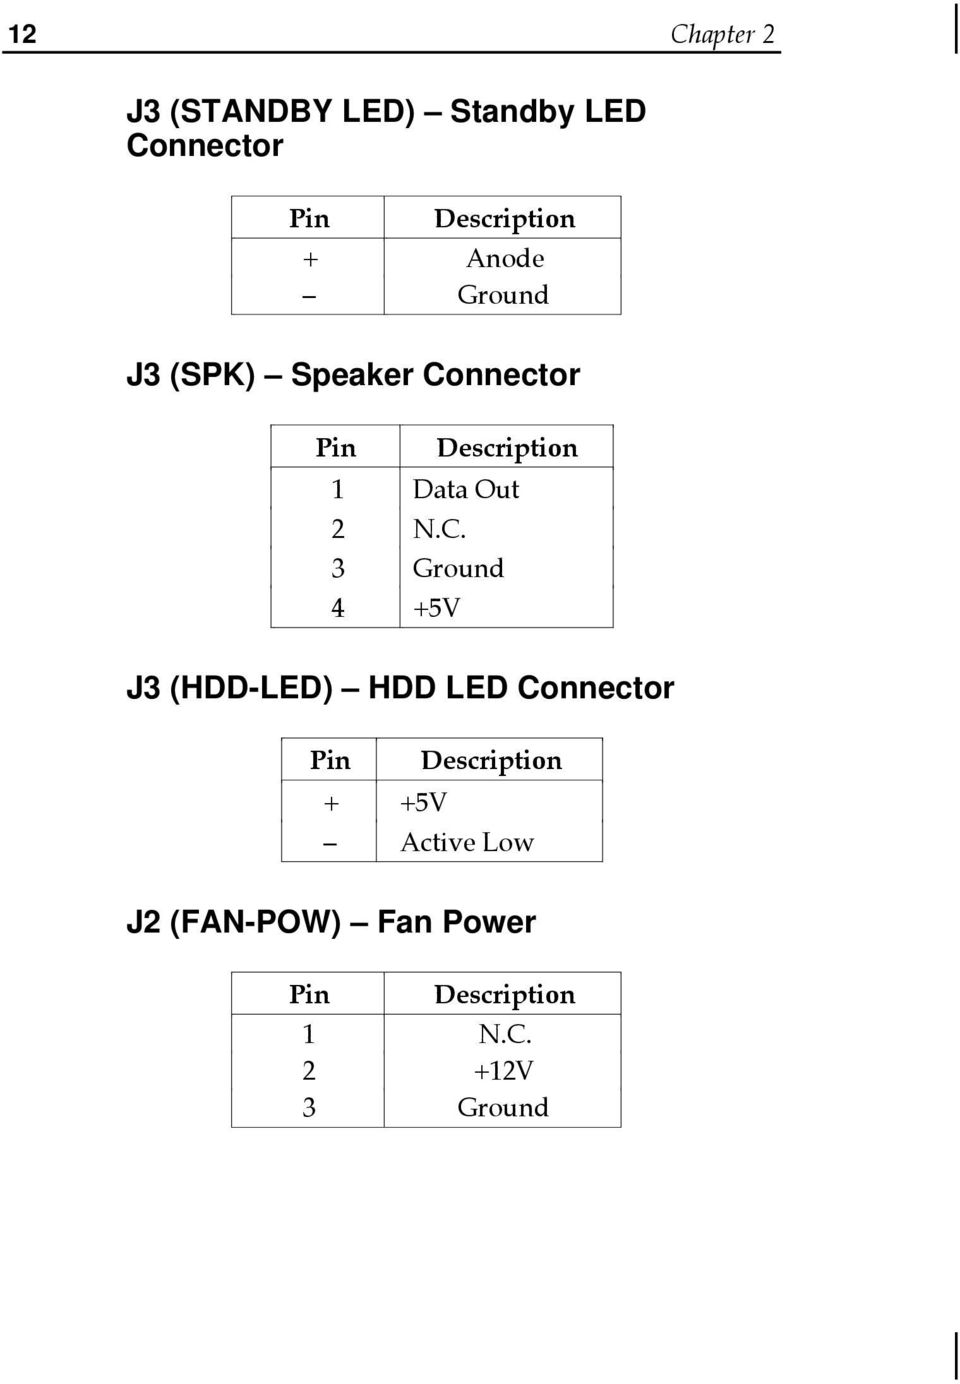 C. 3 Ground 4 +5V J3 (HDD-LED) HDD LED Connector Pin Description + +5V